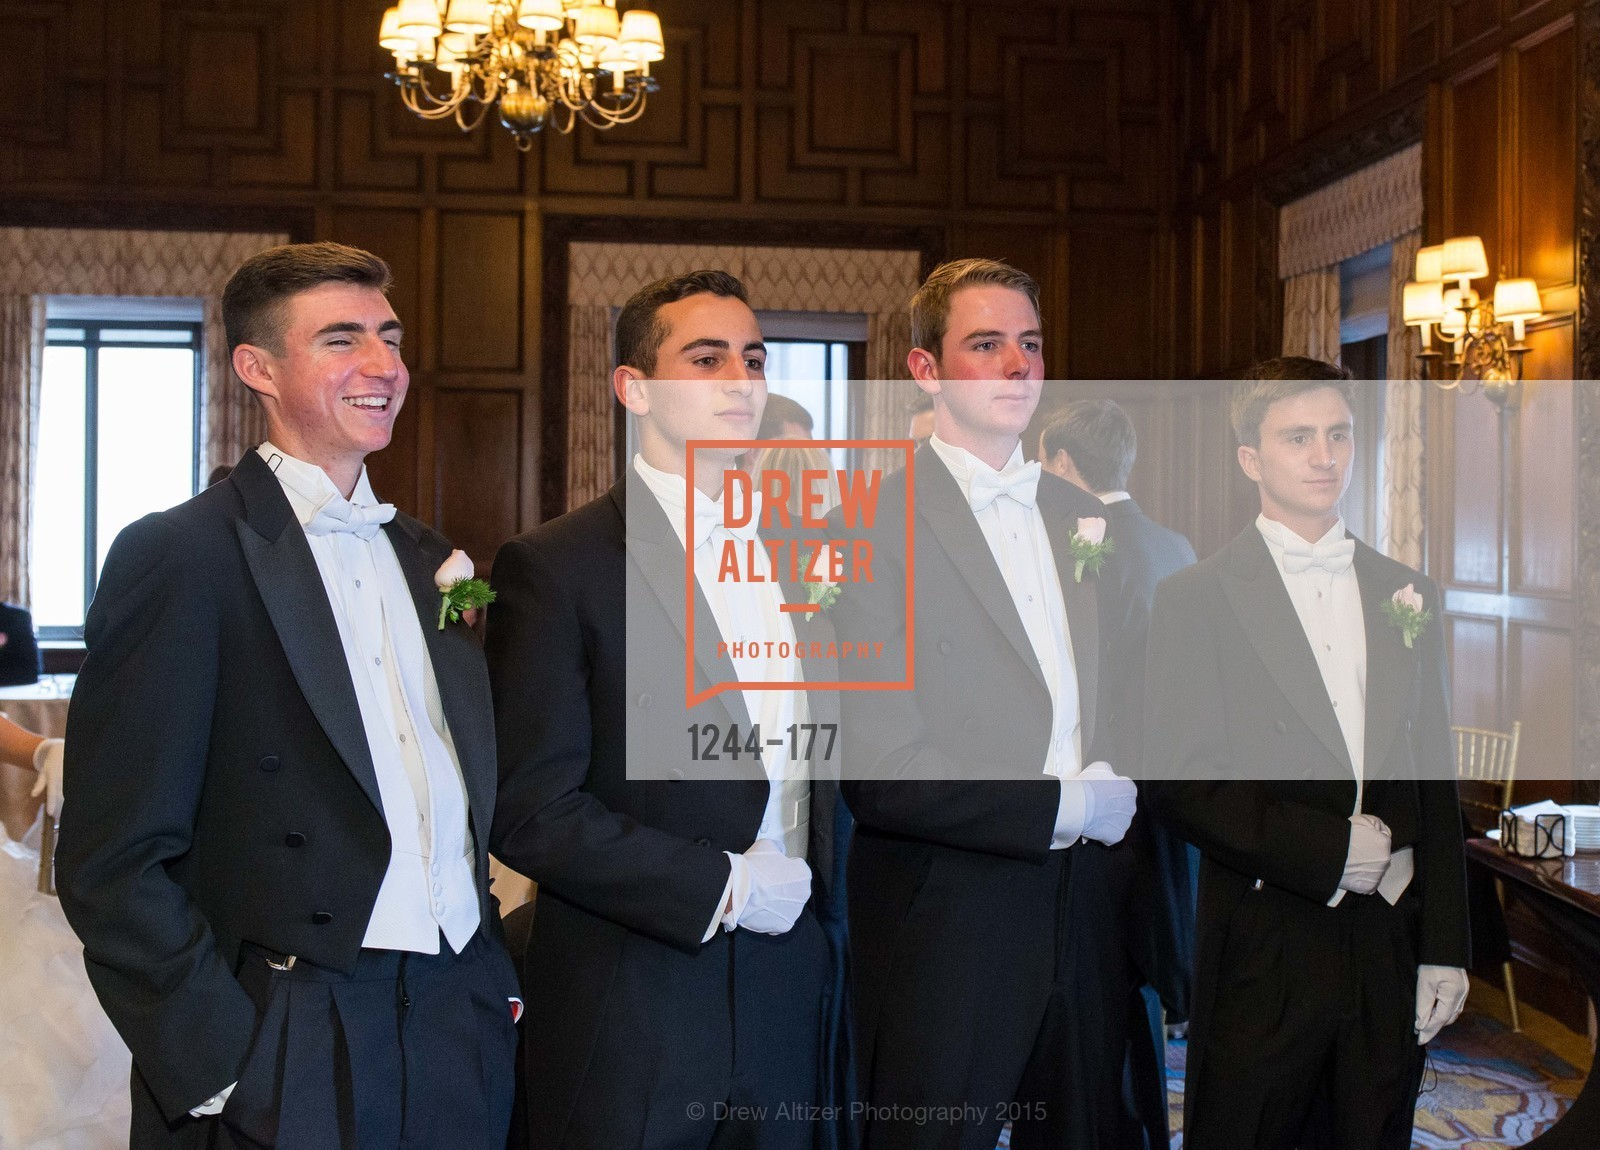 Elias Morrison Schwartz, Maxwell Tucker Brenner, William HIbbard Dana III, Jack Andrew Kariotis, The 2015 San Francisco Debutante Ball, The Westin St. Francis San Francisco Union Square. 335 Powell St, June 20th, 2015,Drew Altizer, Drew Altizer Photography, full-service agency, private events, San Francisco photographer, photographer california